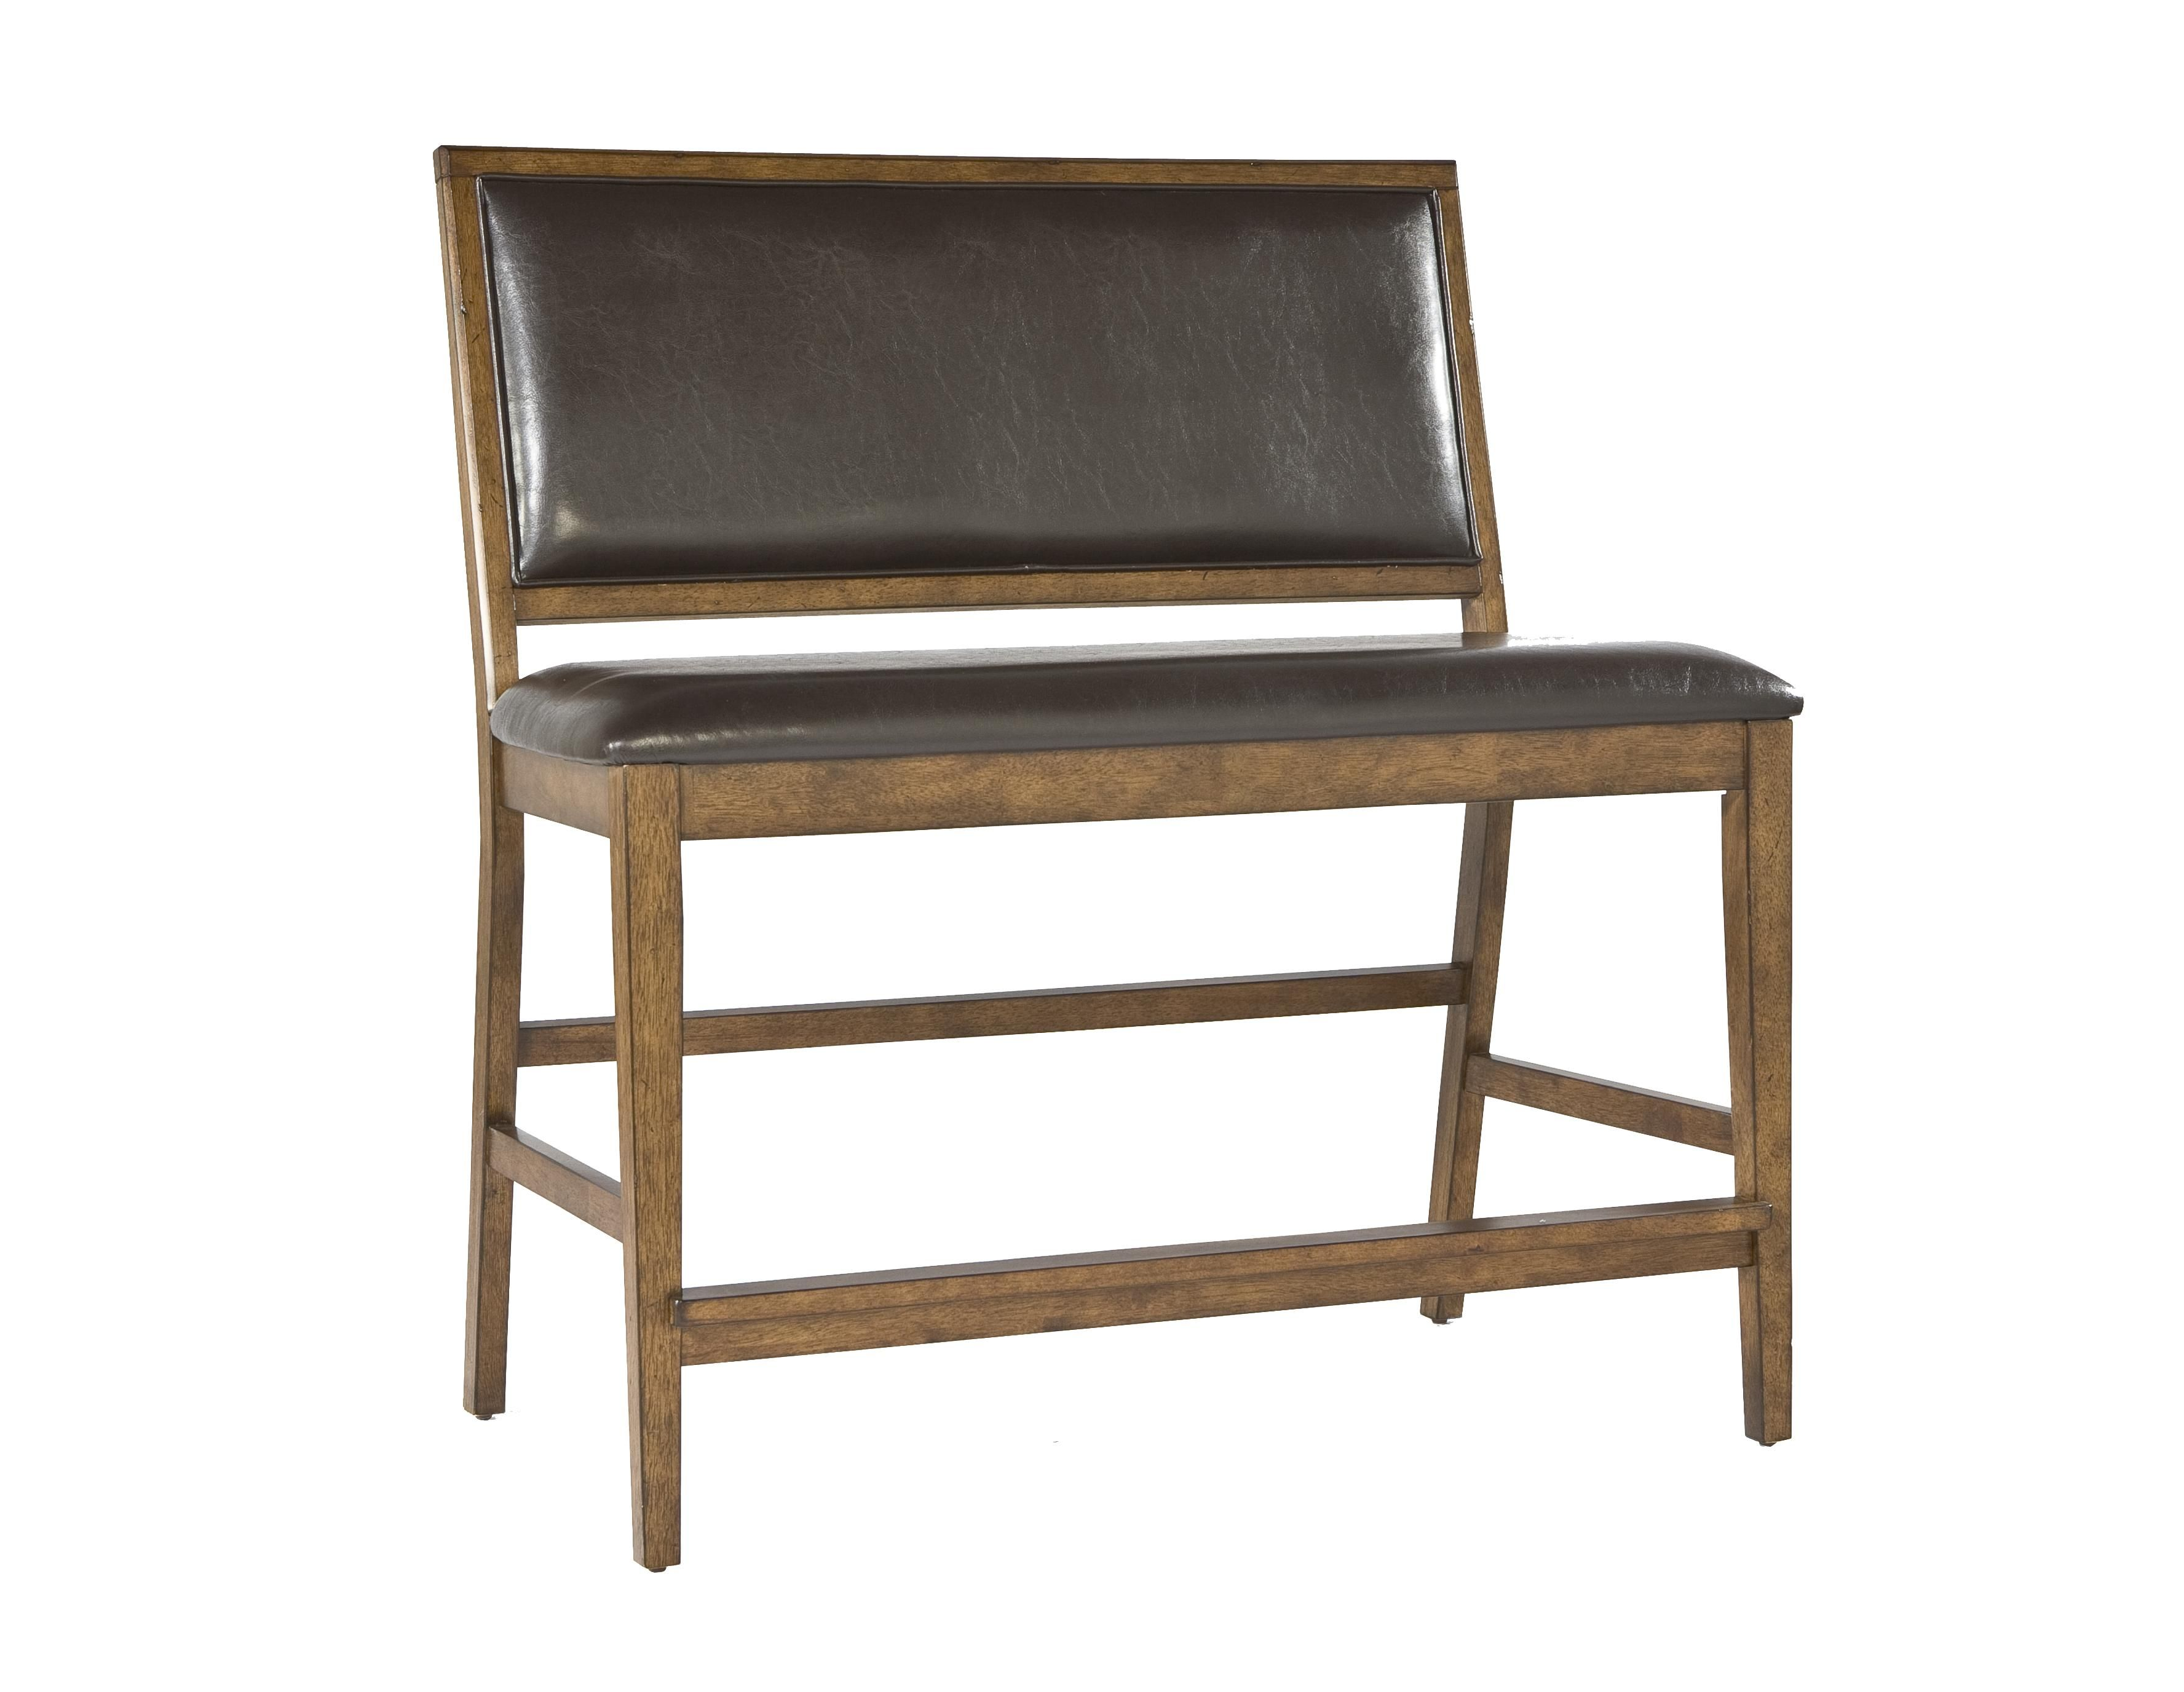 Santa Clara Upholstered Bench By Intercon Counter Height Bench Dining Bench Bench With Back